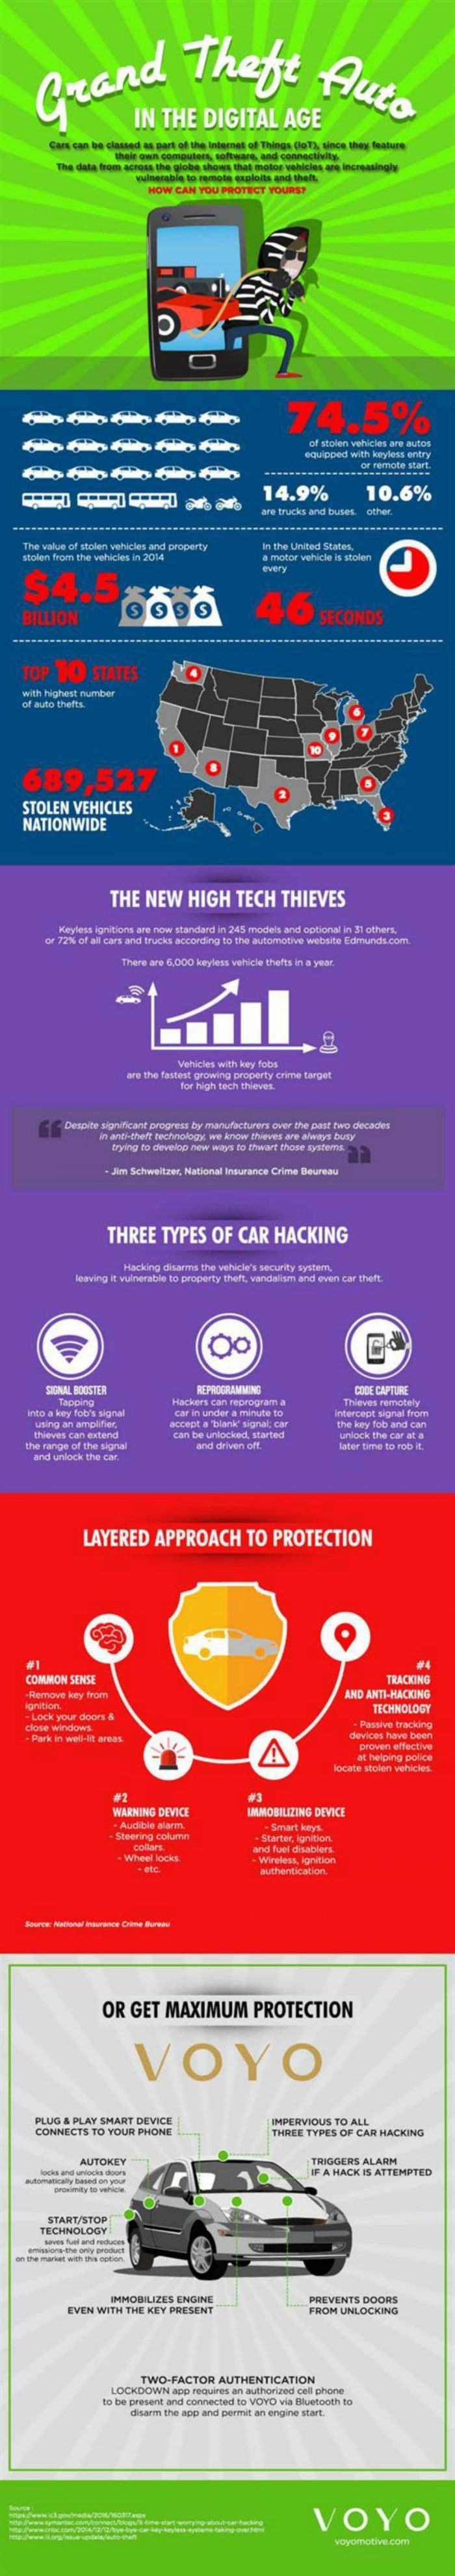 Voyo Car Hacking Graphic